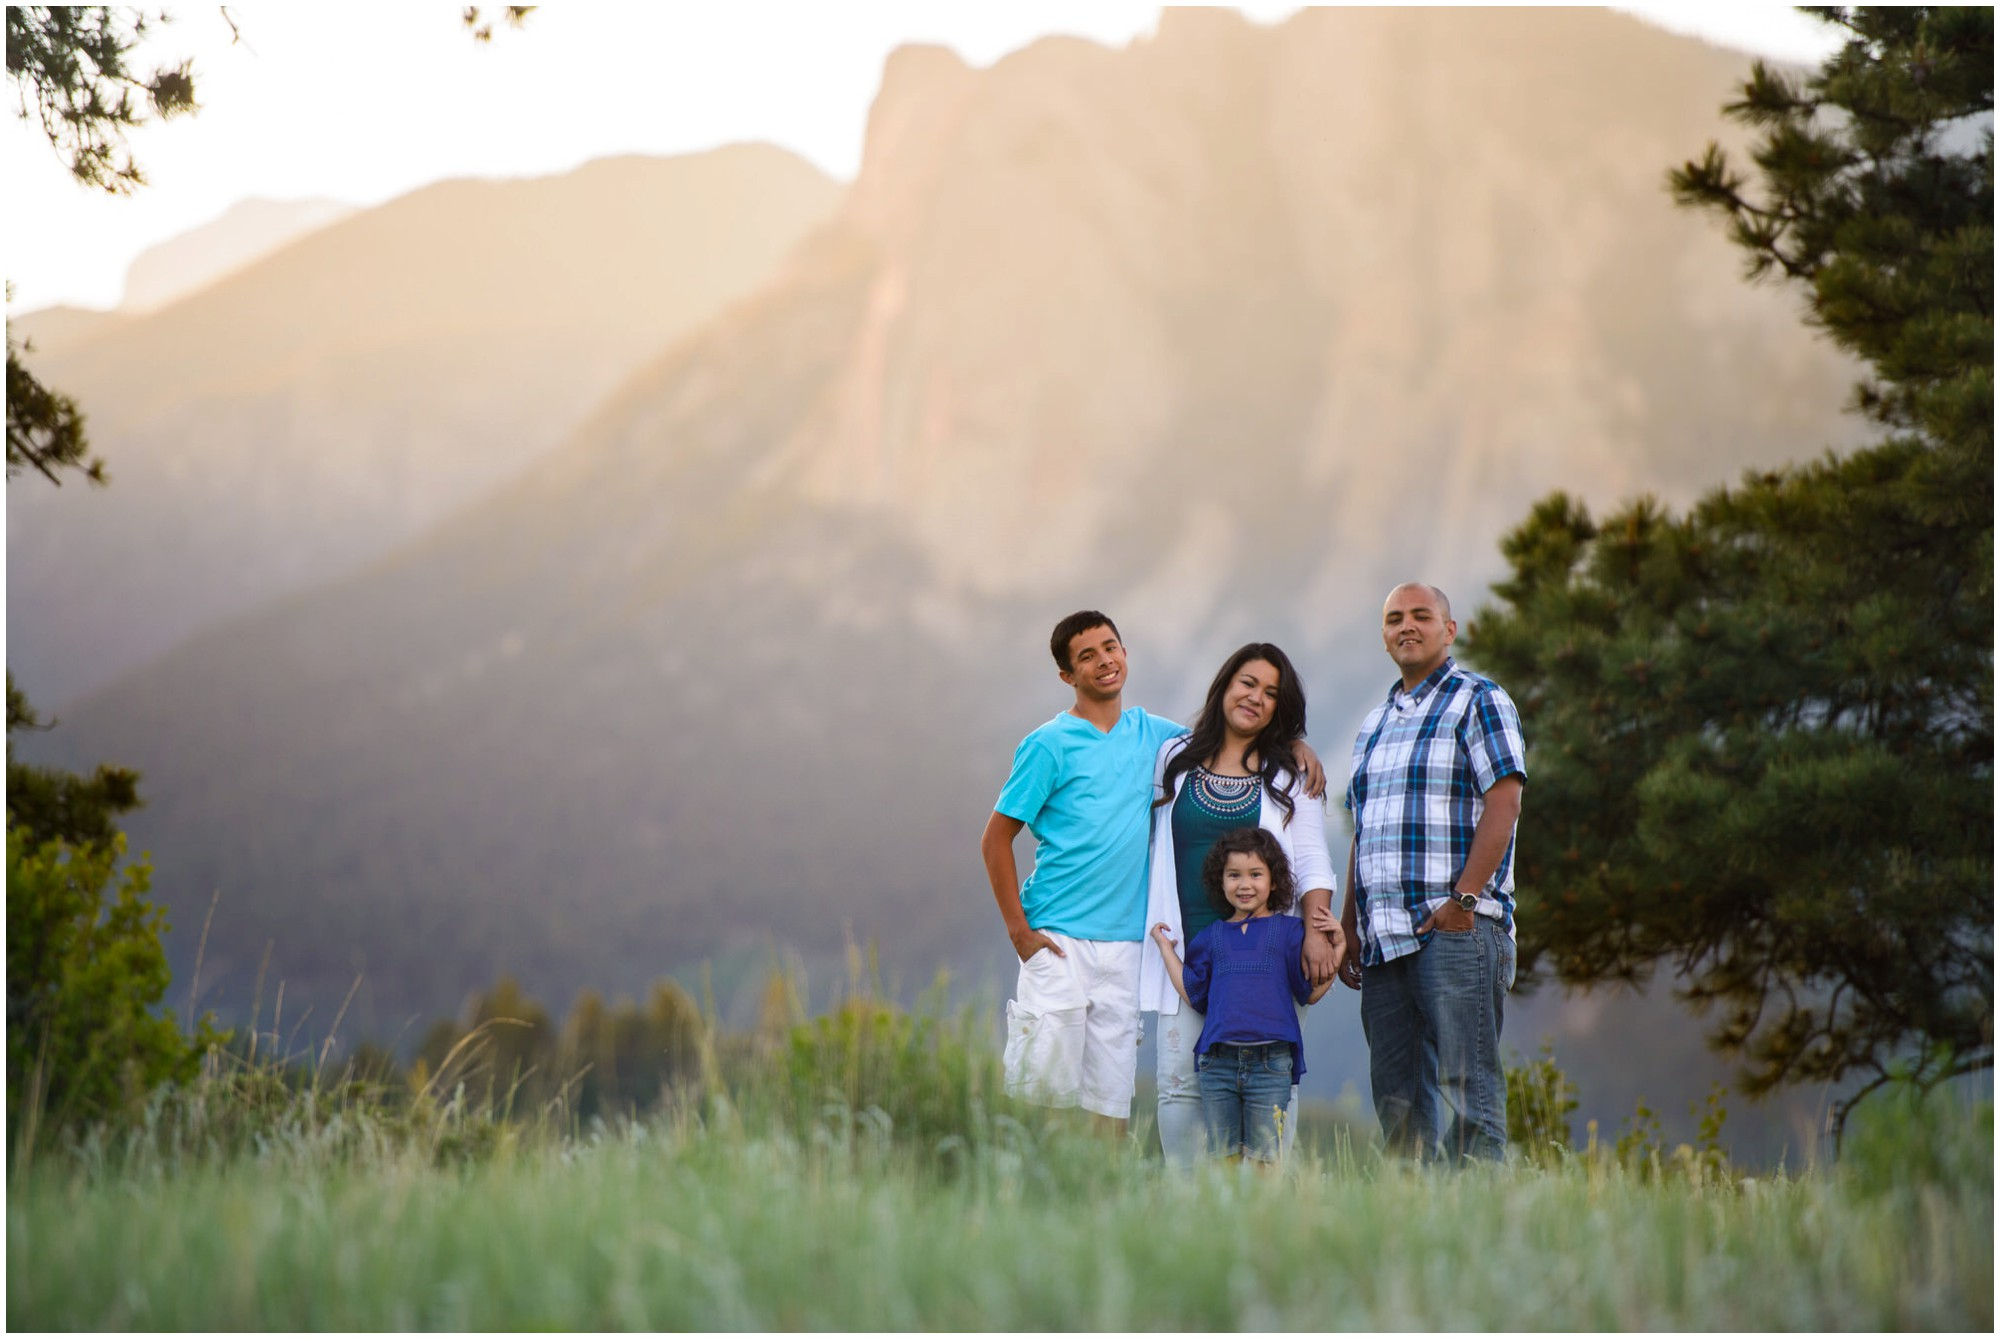 97-Estes-Park-Colorado-family-photography.jpg